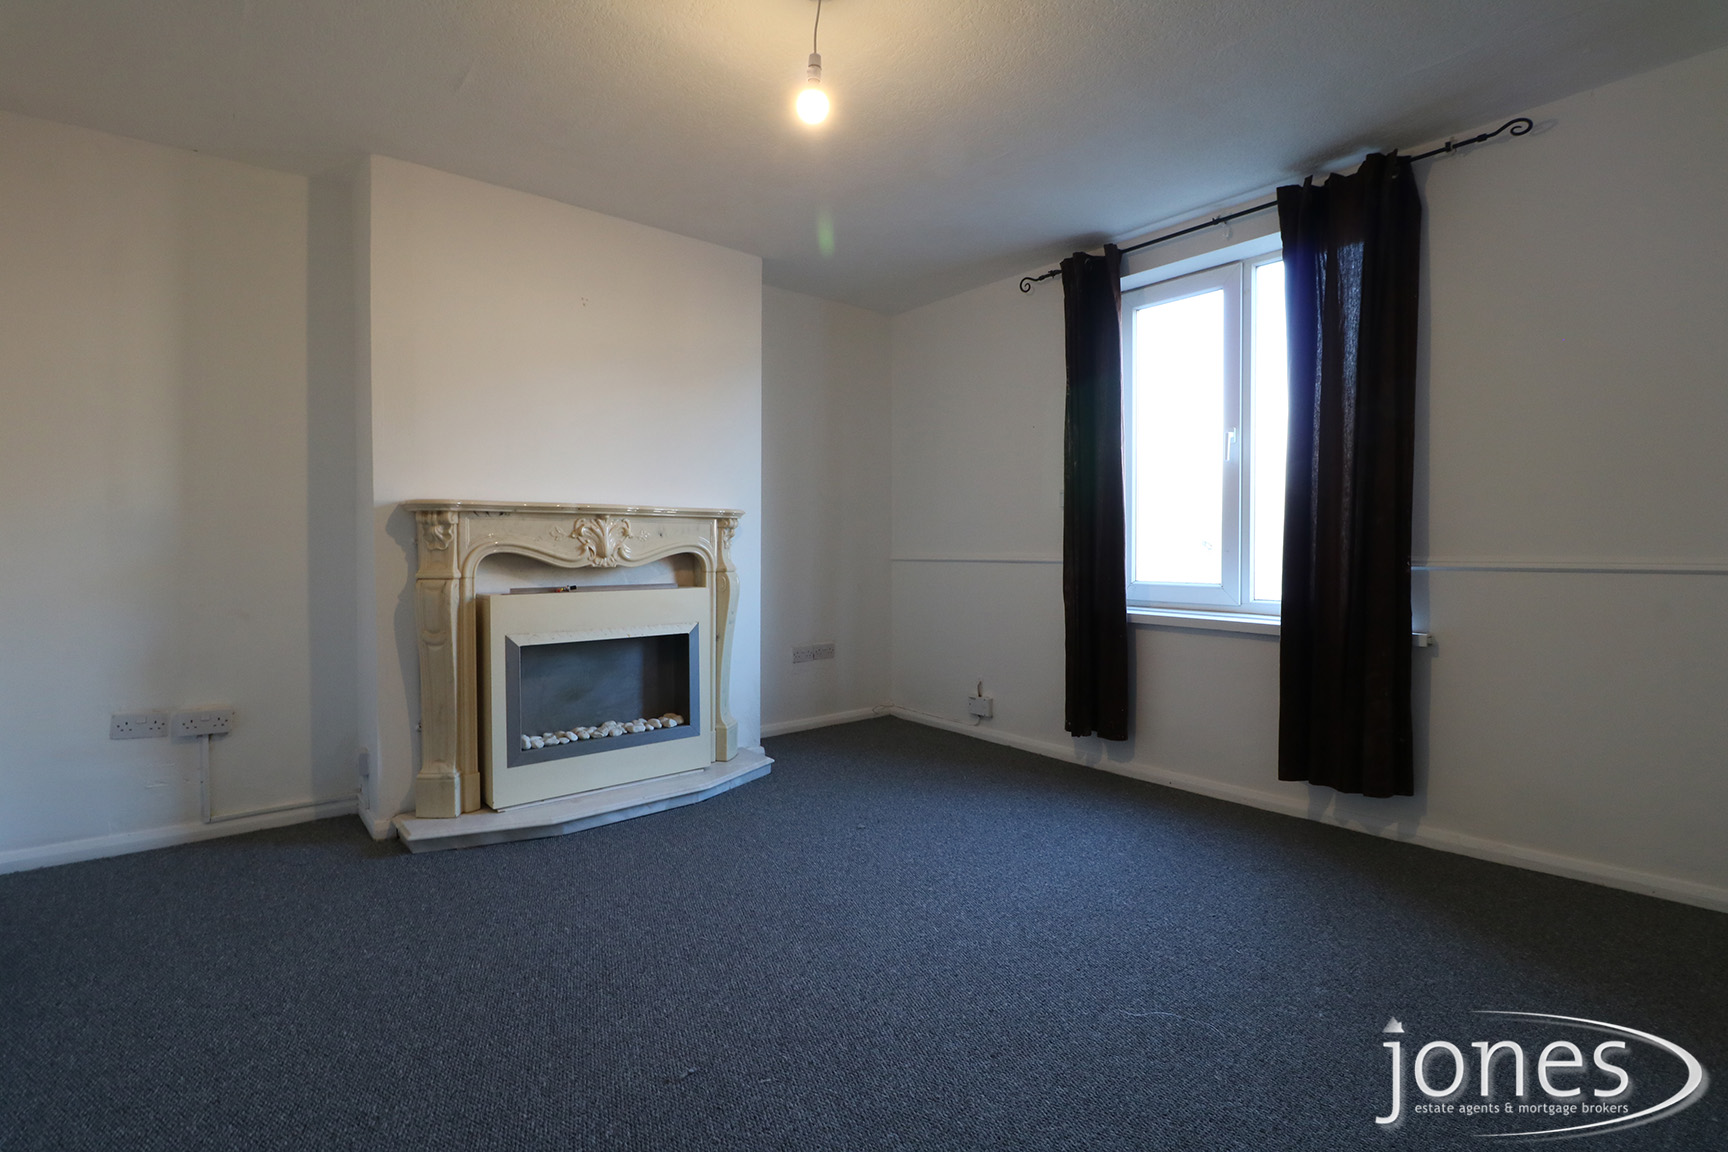 Home for Sale Let - Photo 02 Greta Road,Norton,Stockton on tees,TS20 1BA